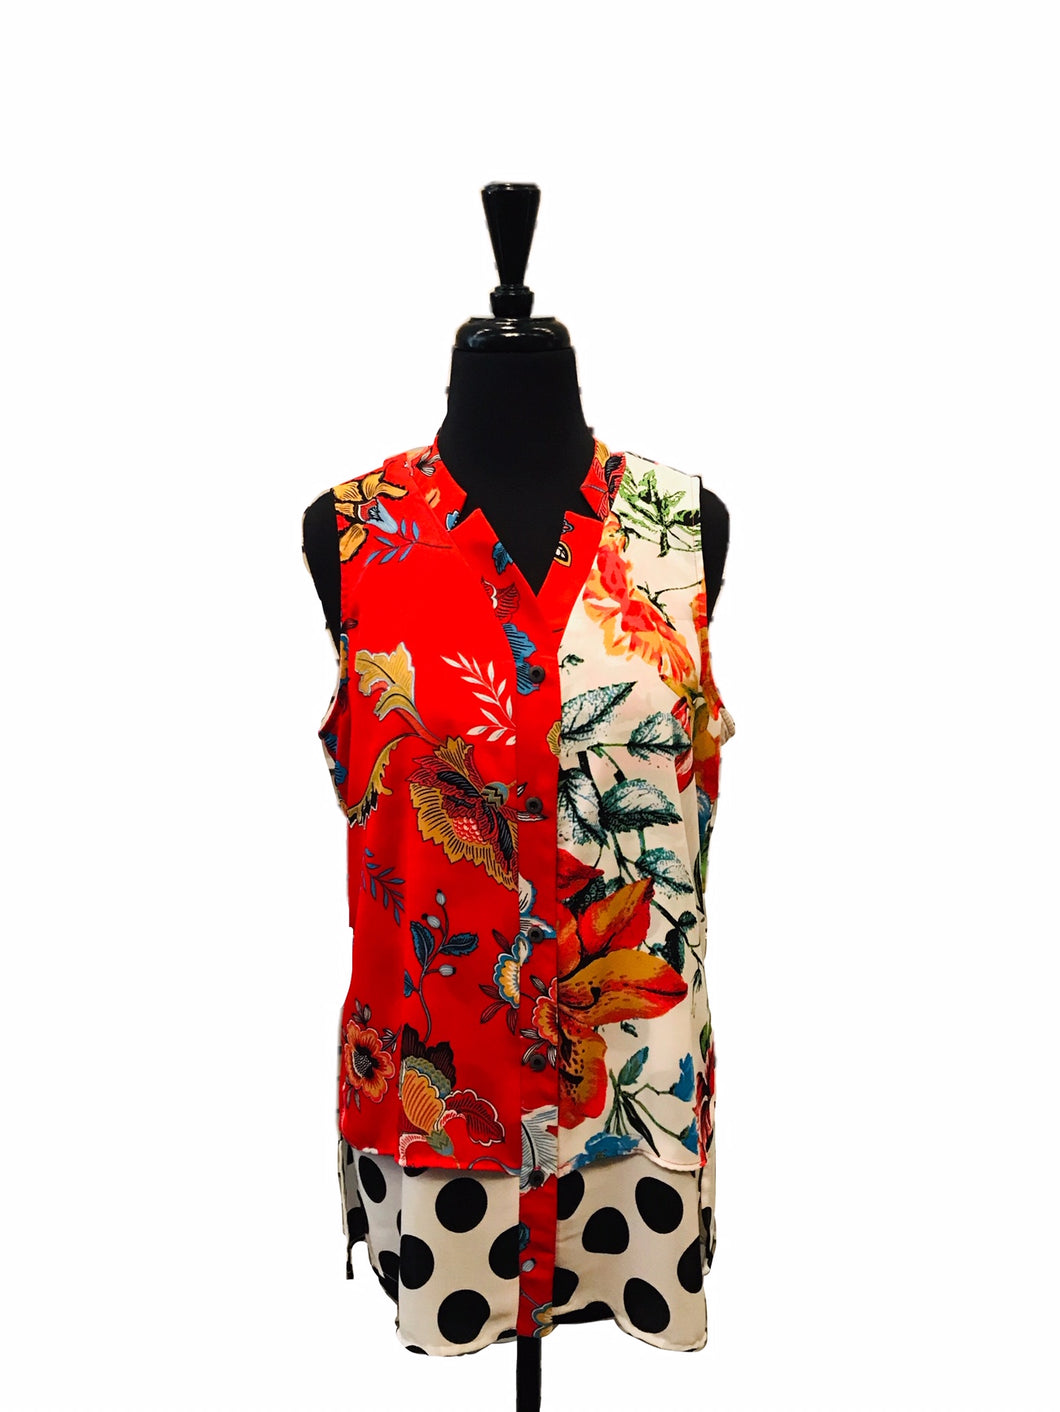 Michael Tyler Floral Sleeveless Blouse